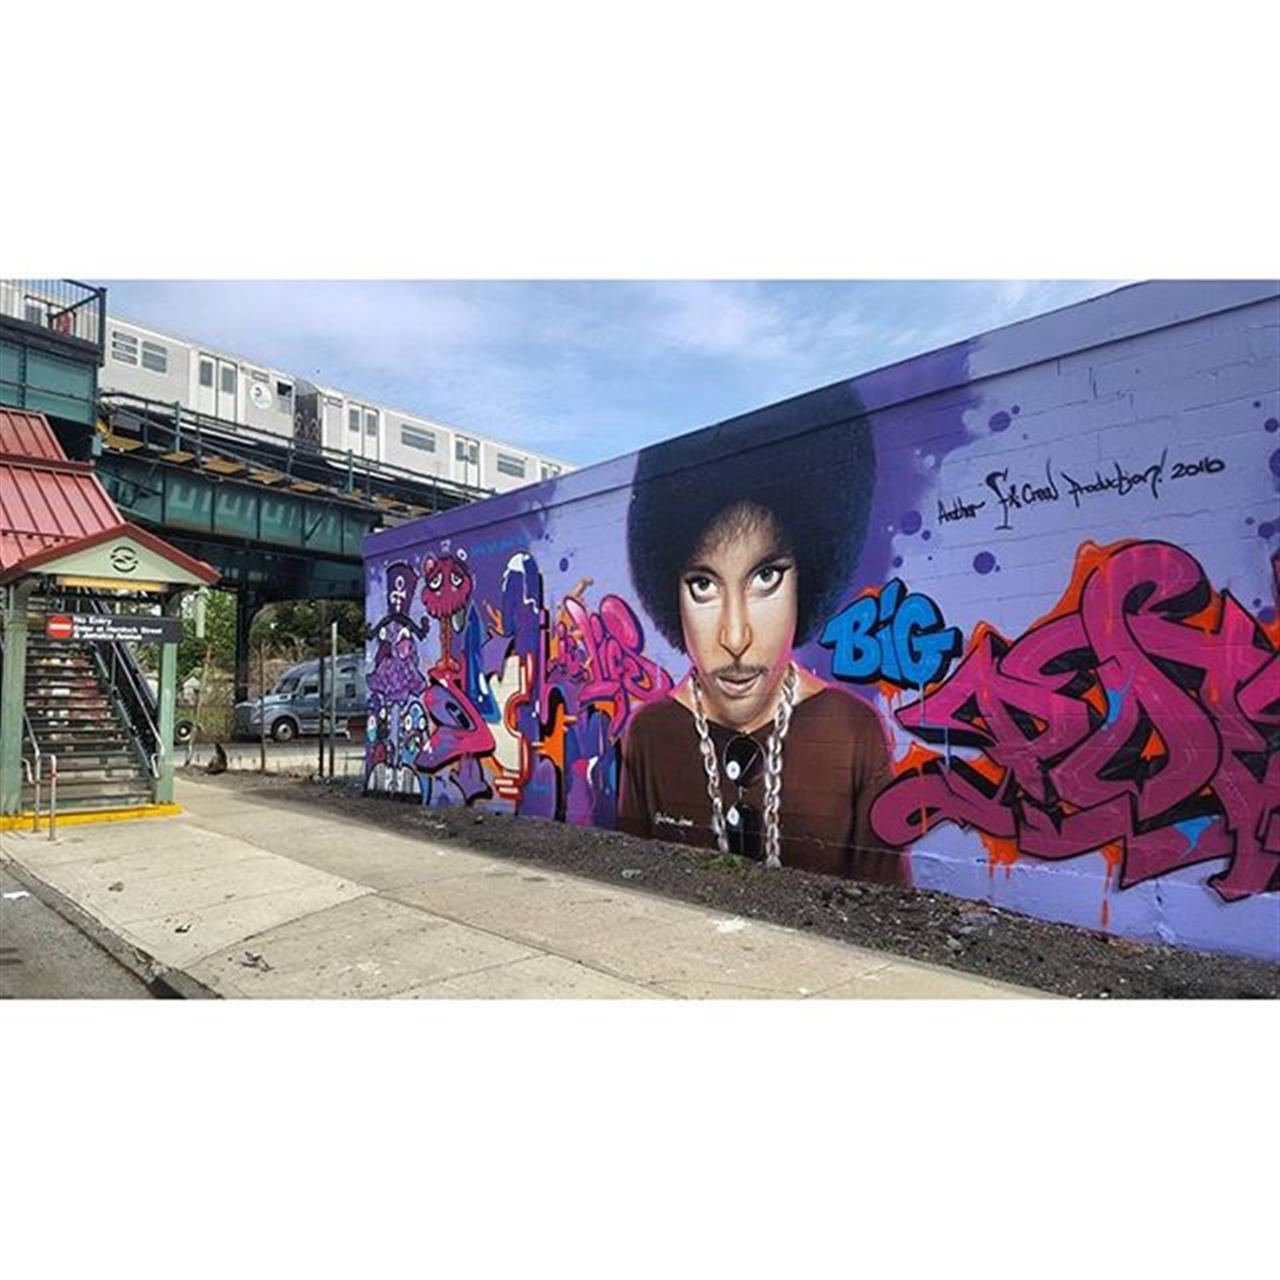 Stumbled on this Prince memorial today #nyc #brooklyn #cypresshills #leadingrelocal